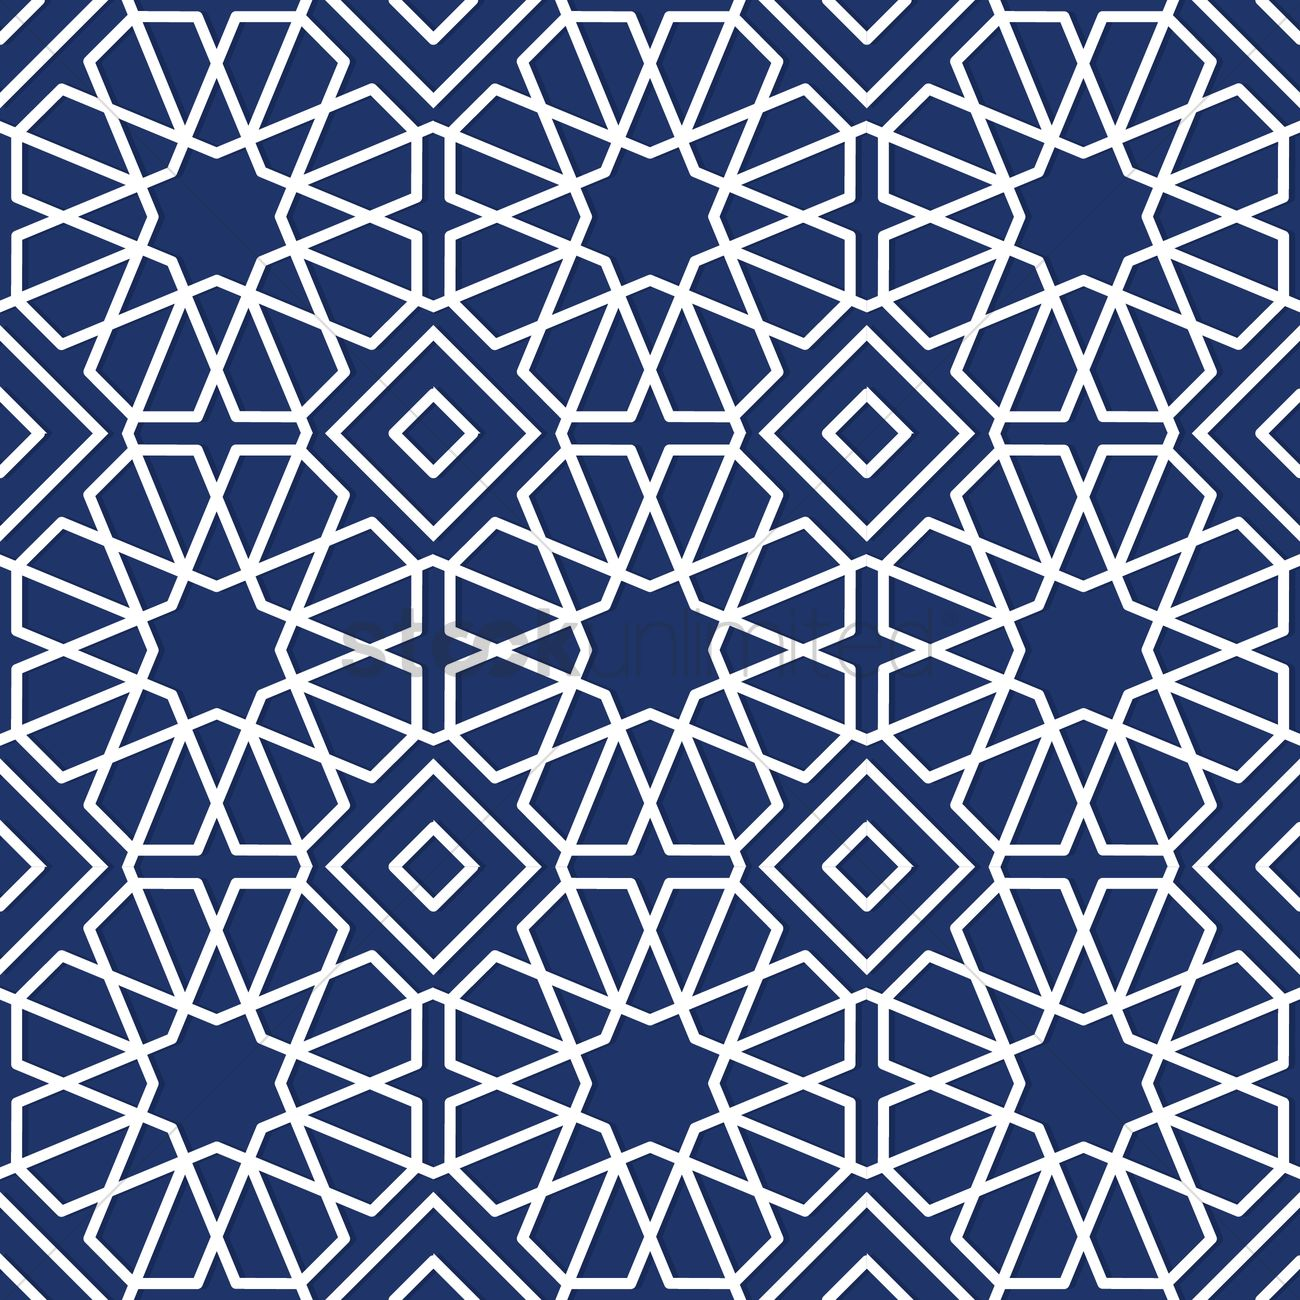 Islamic Geometric Designs Images